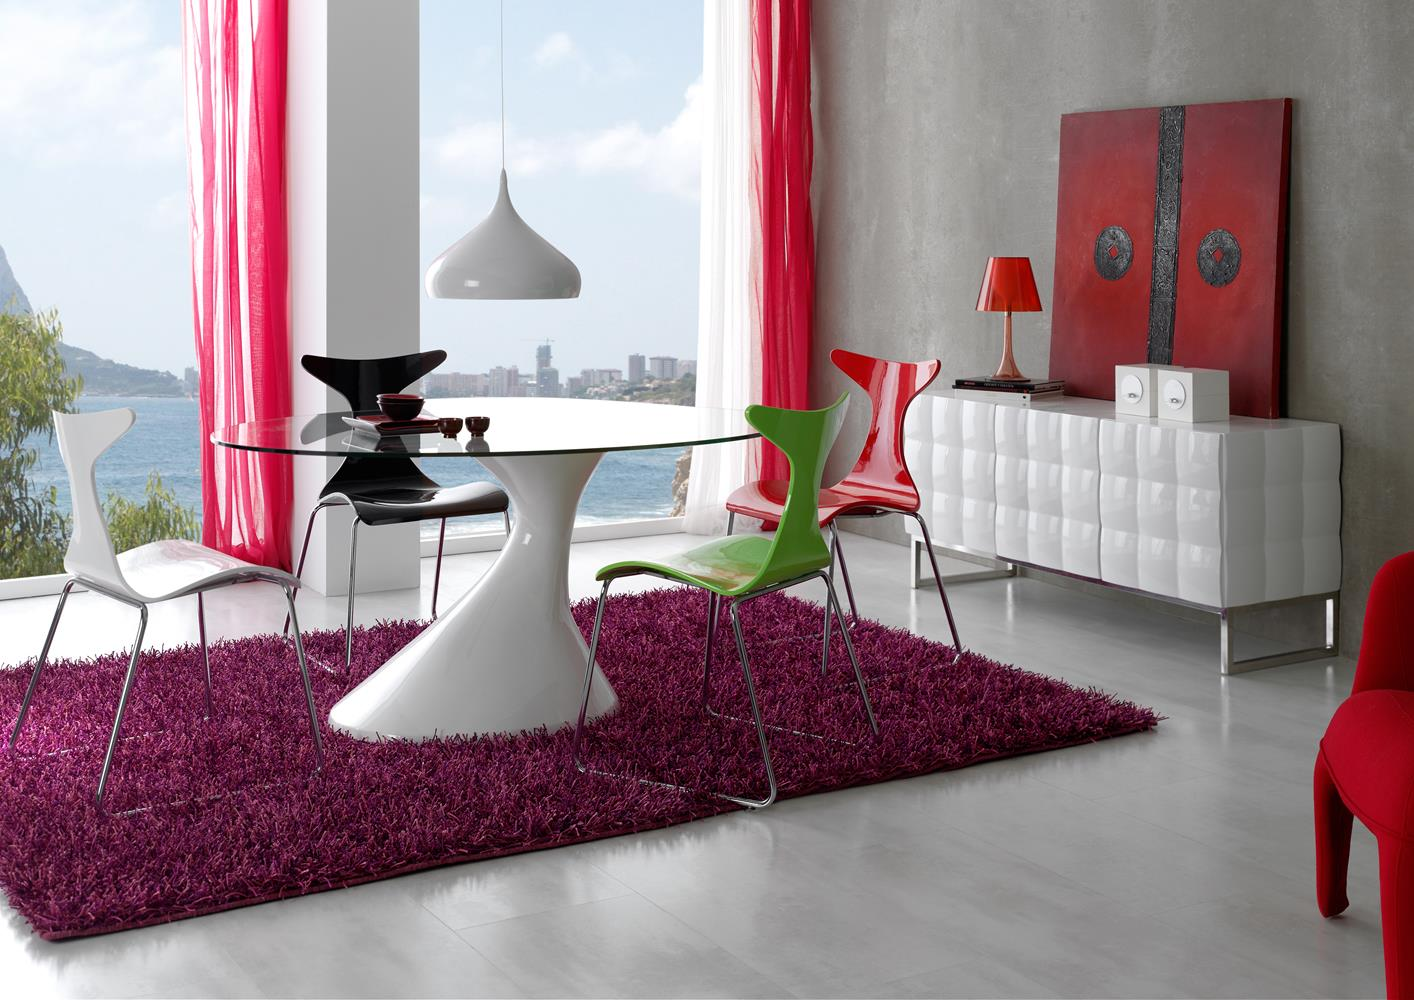 acheter votre table couleur noyer pied central et allonge chez simeuble. Black Bedroom Furniture Sets. Home Design Ideas